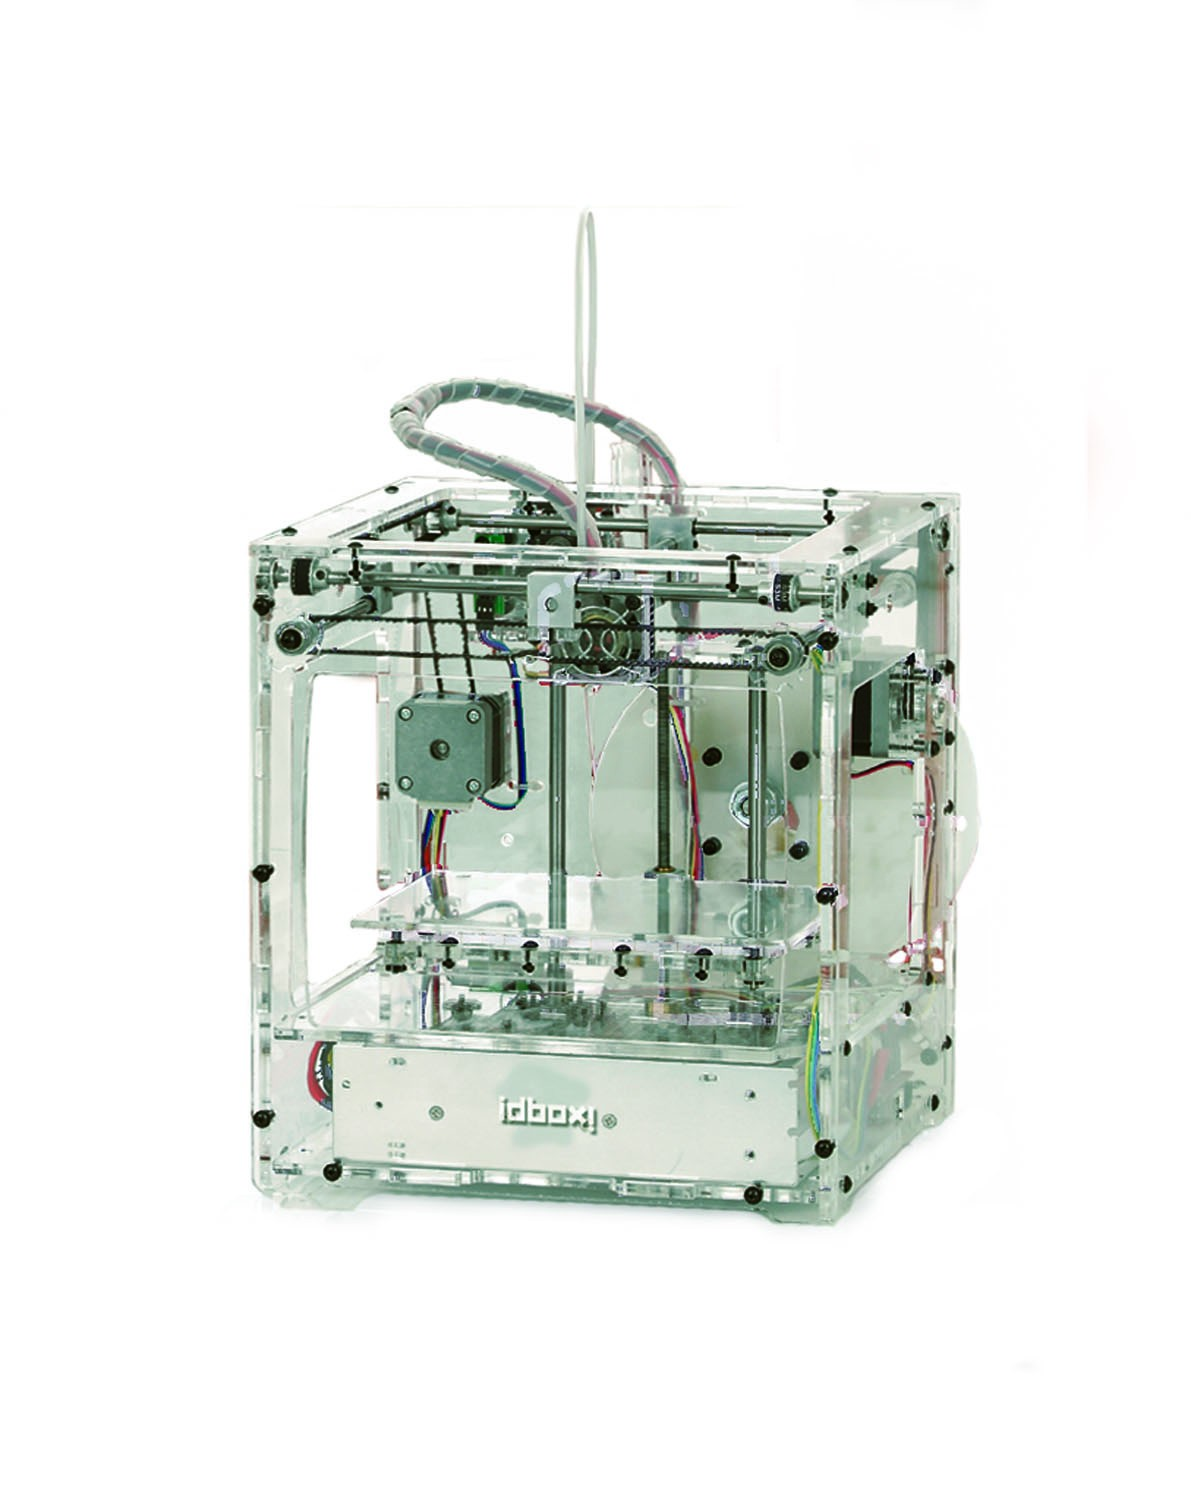 3d Printer Idbox Model Full Kit De Agostini Modelspace